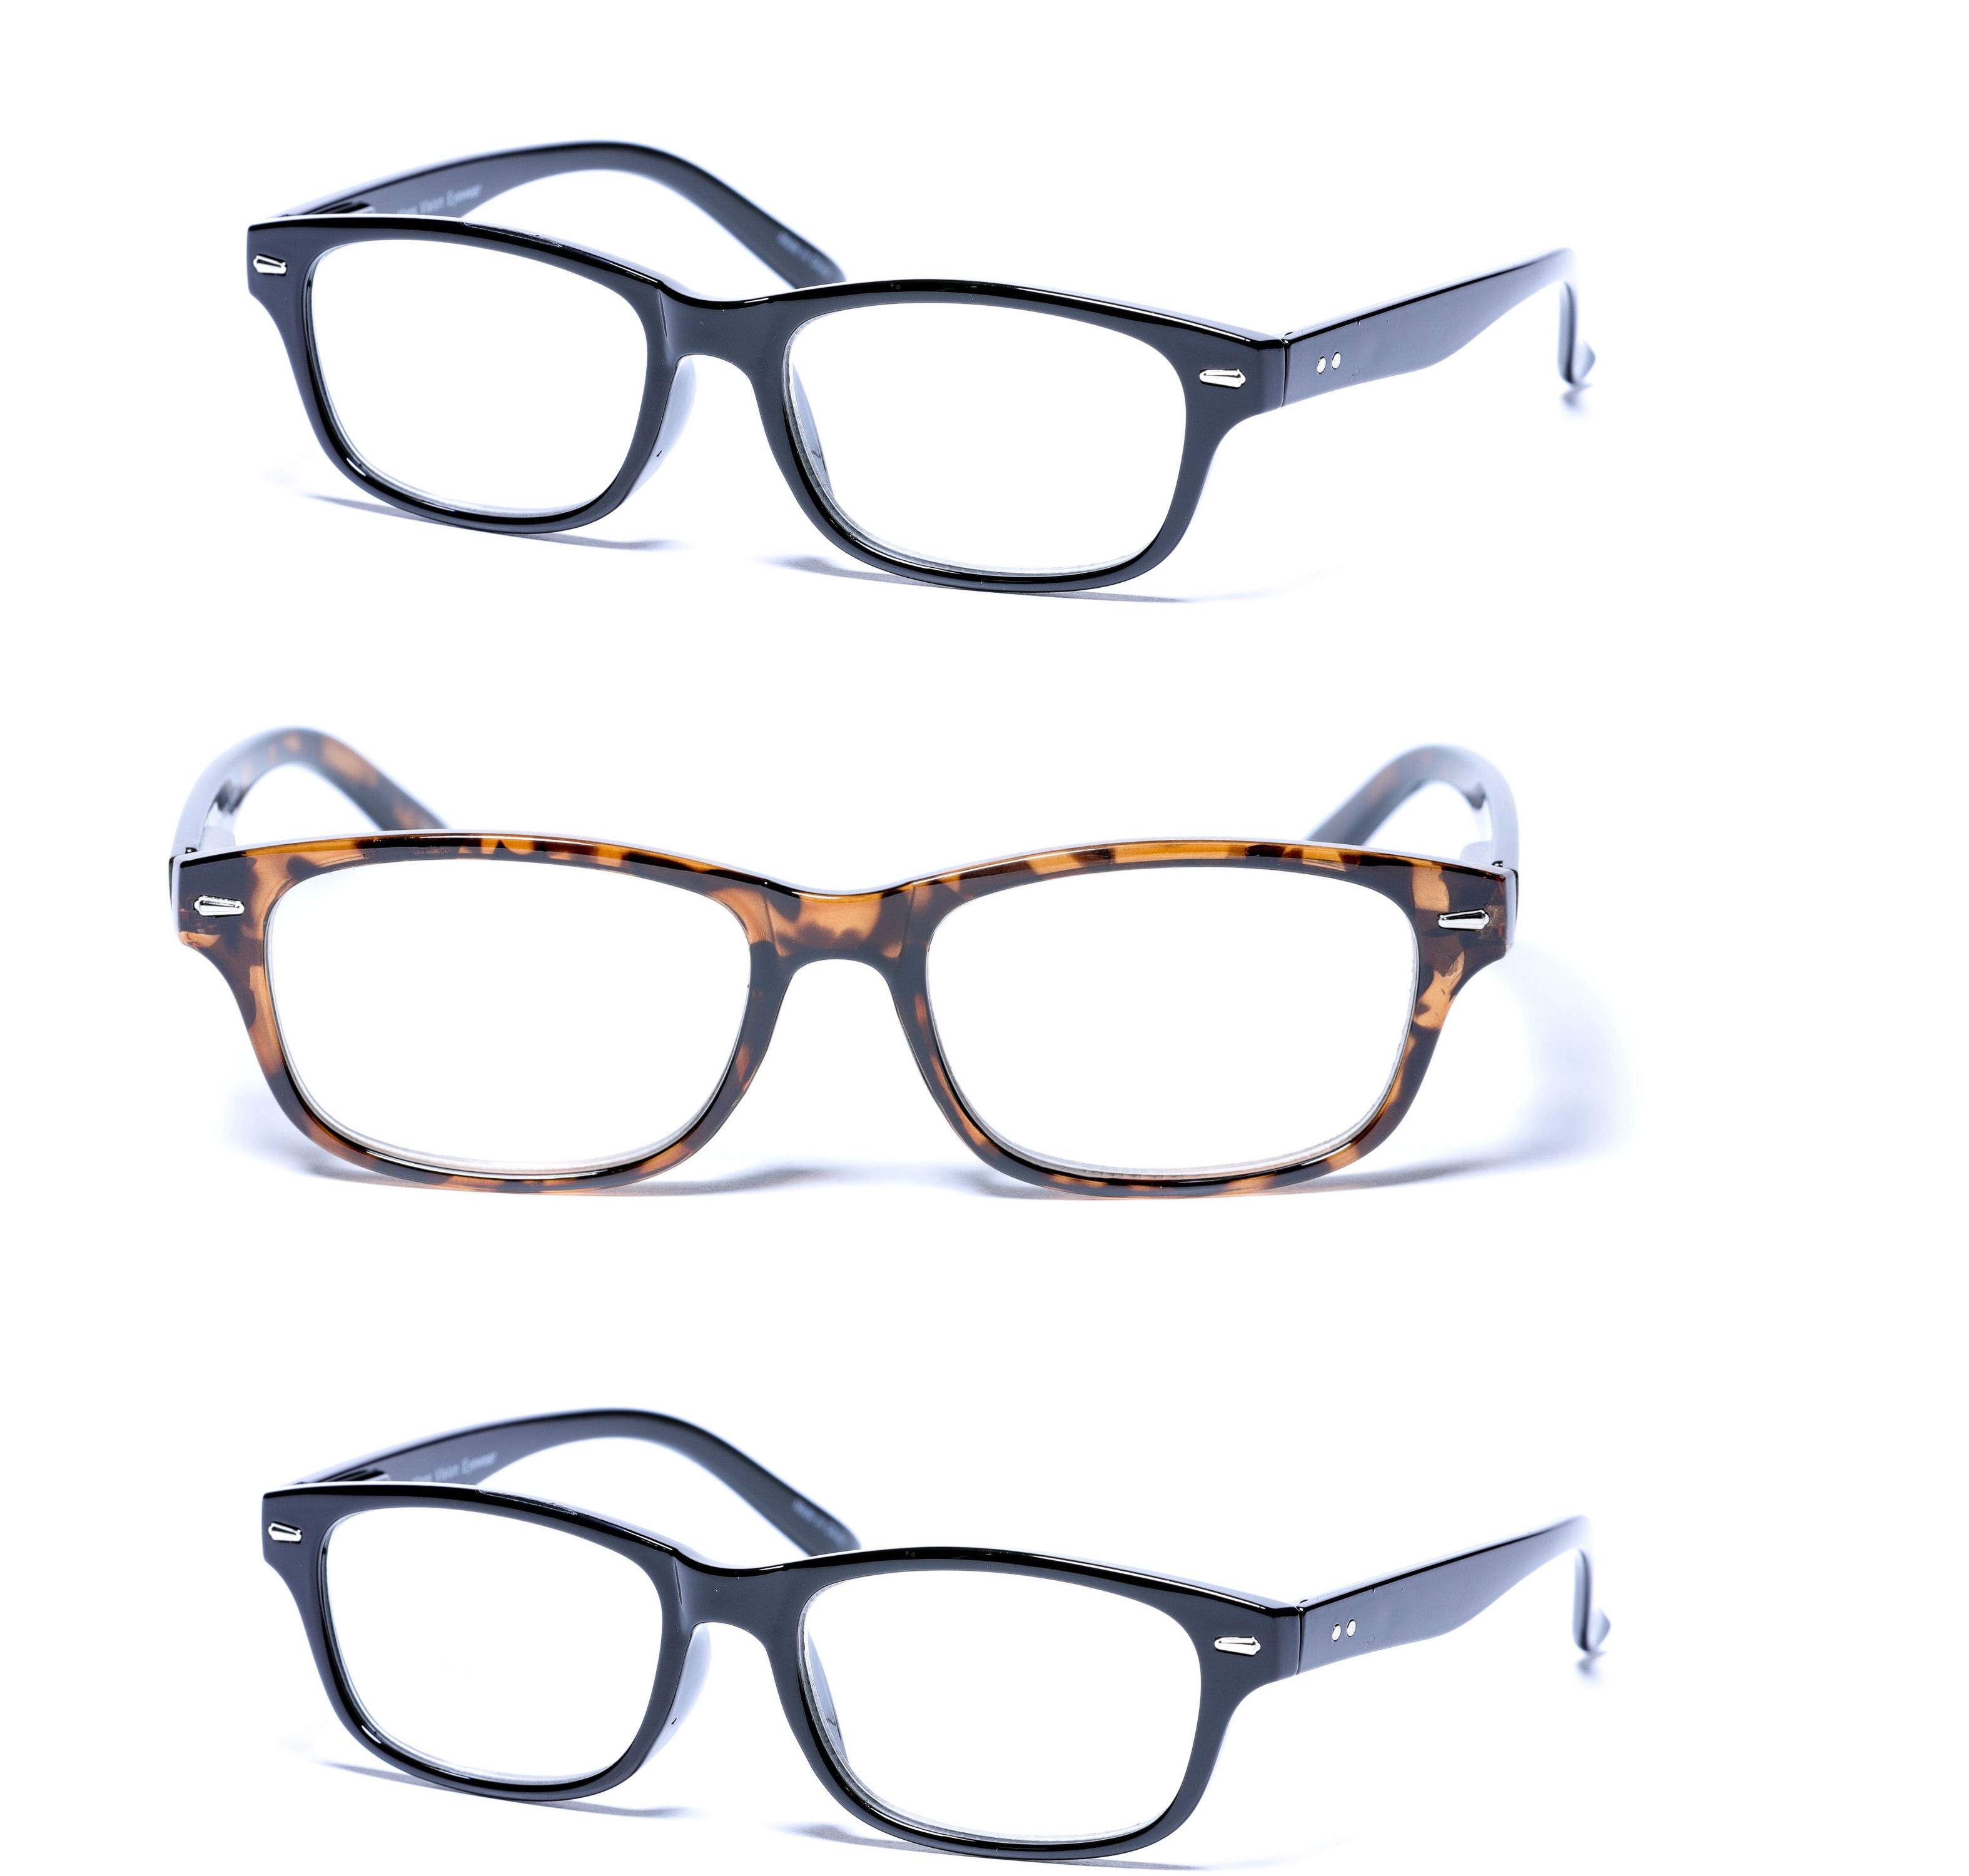 3 Pair of the The Intellect Unisex Reading Glasses